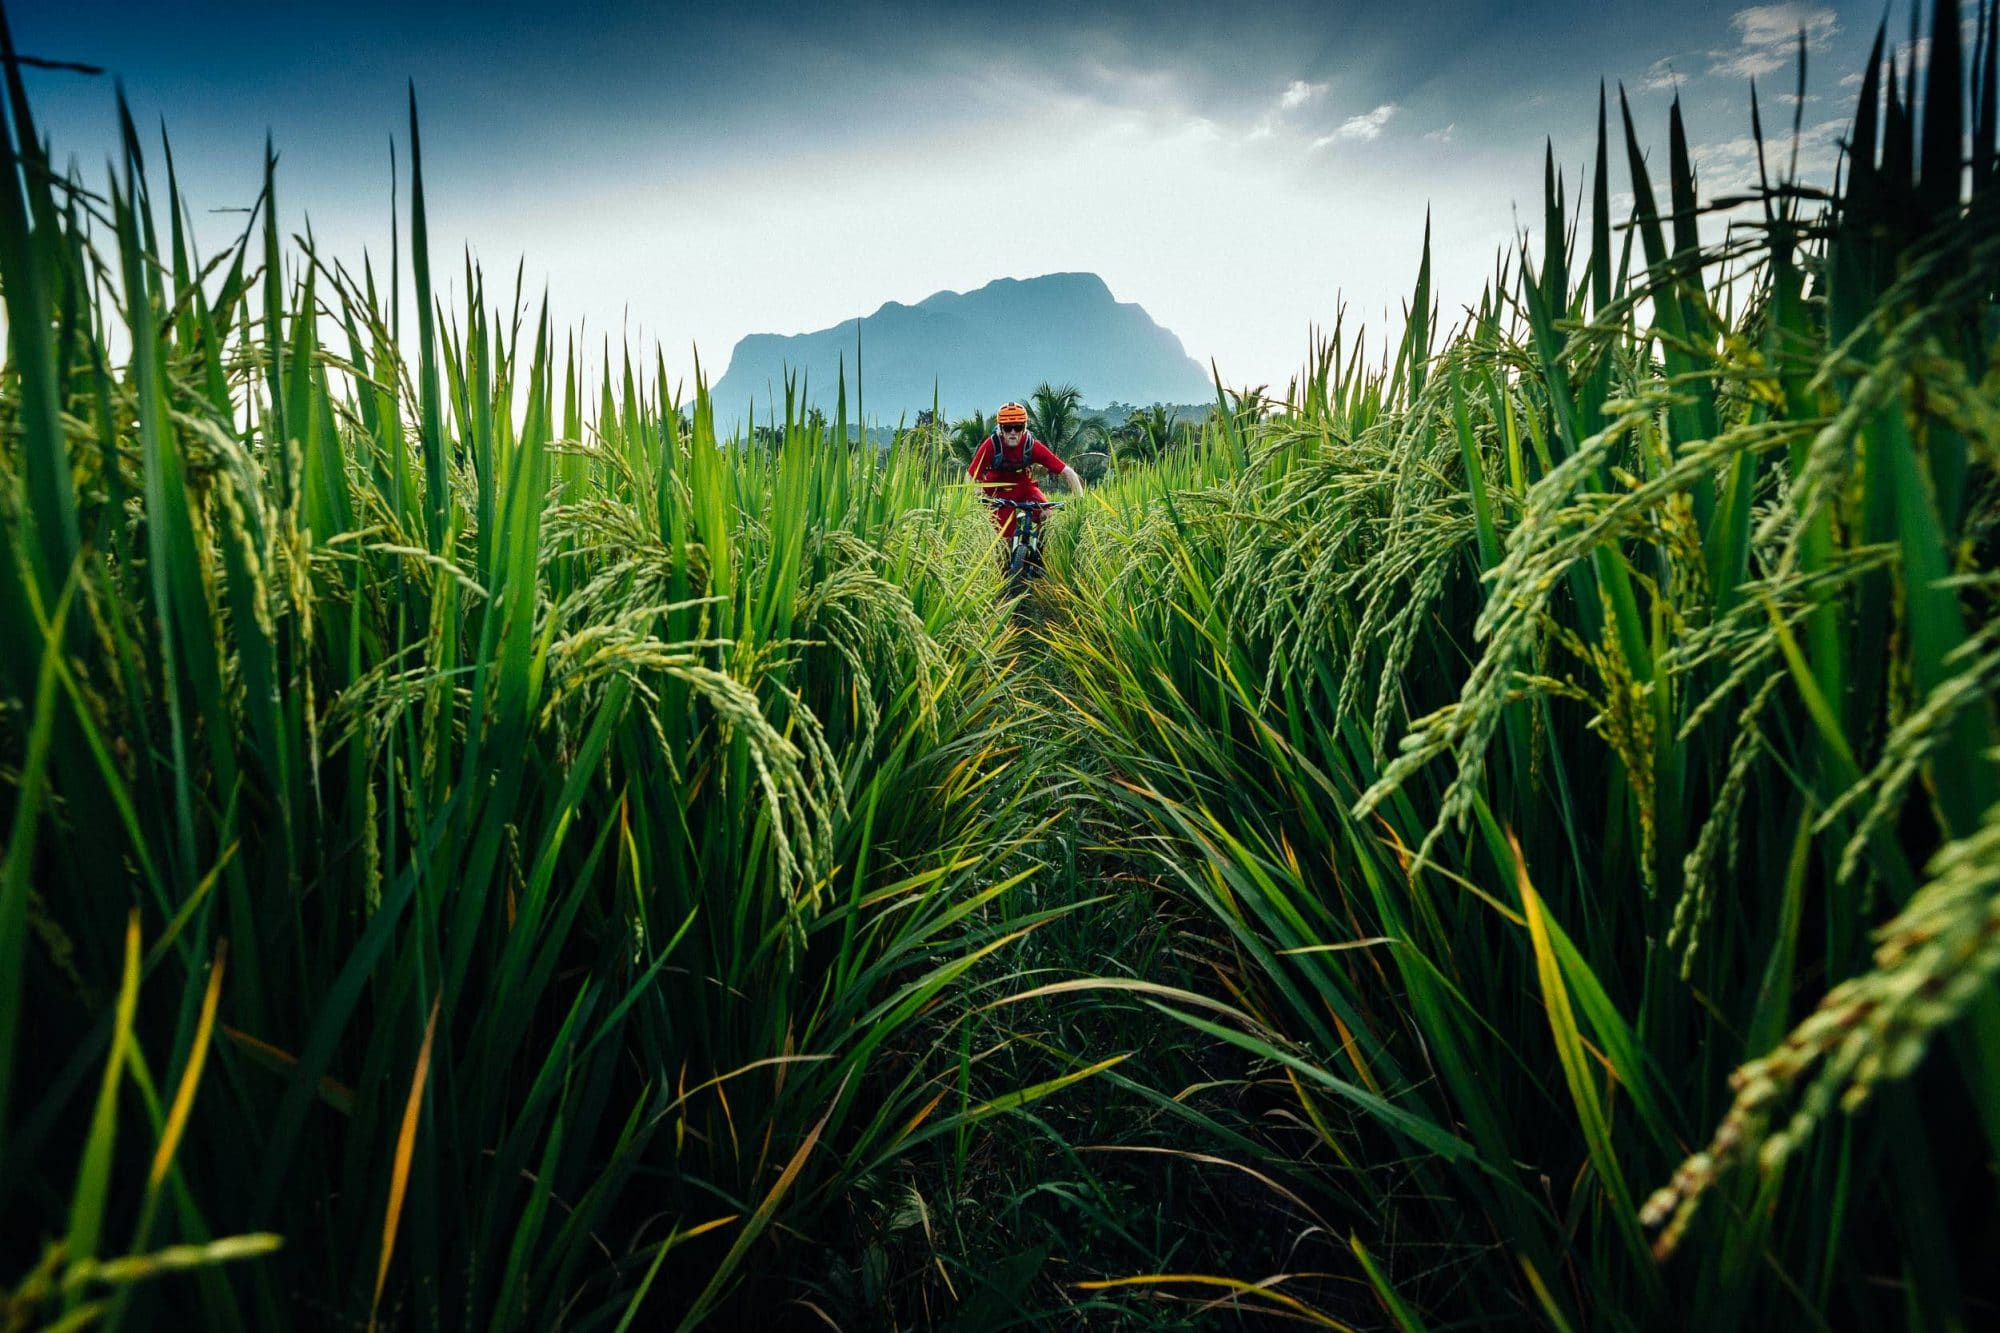 Andrew Whiteford rides through rice fields as the sun sets in the jungle near Chiang Dao, Thailand